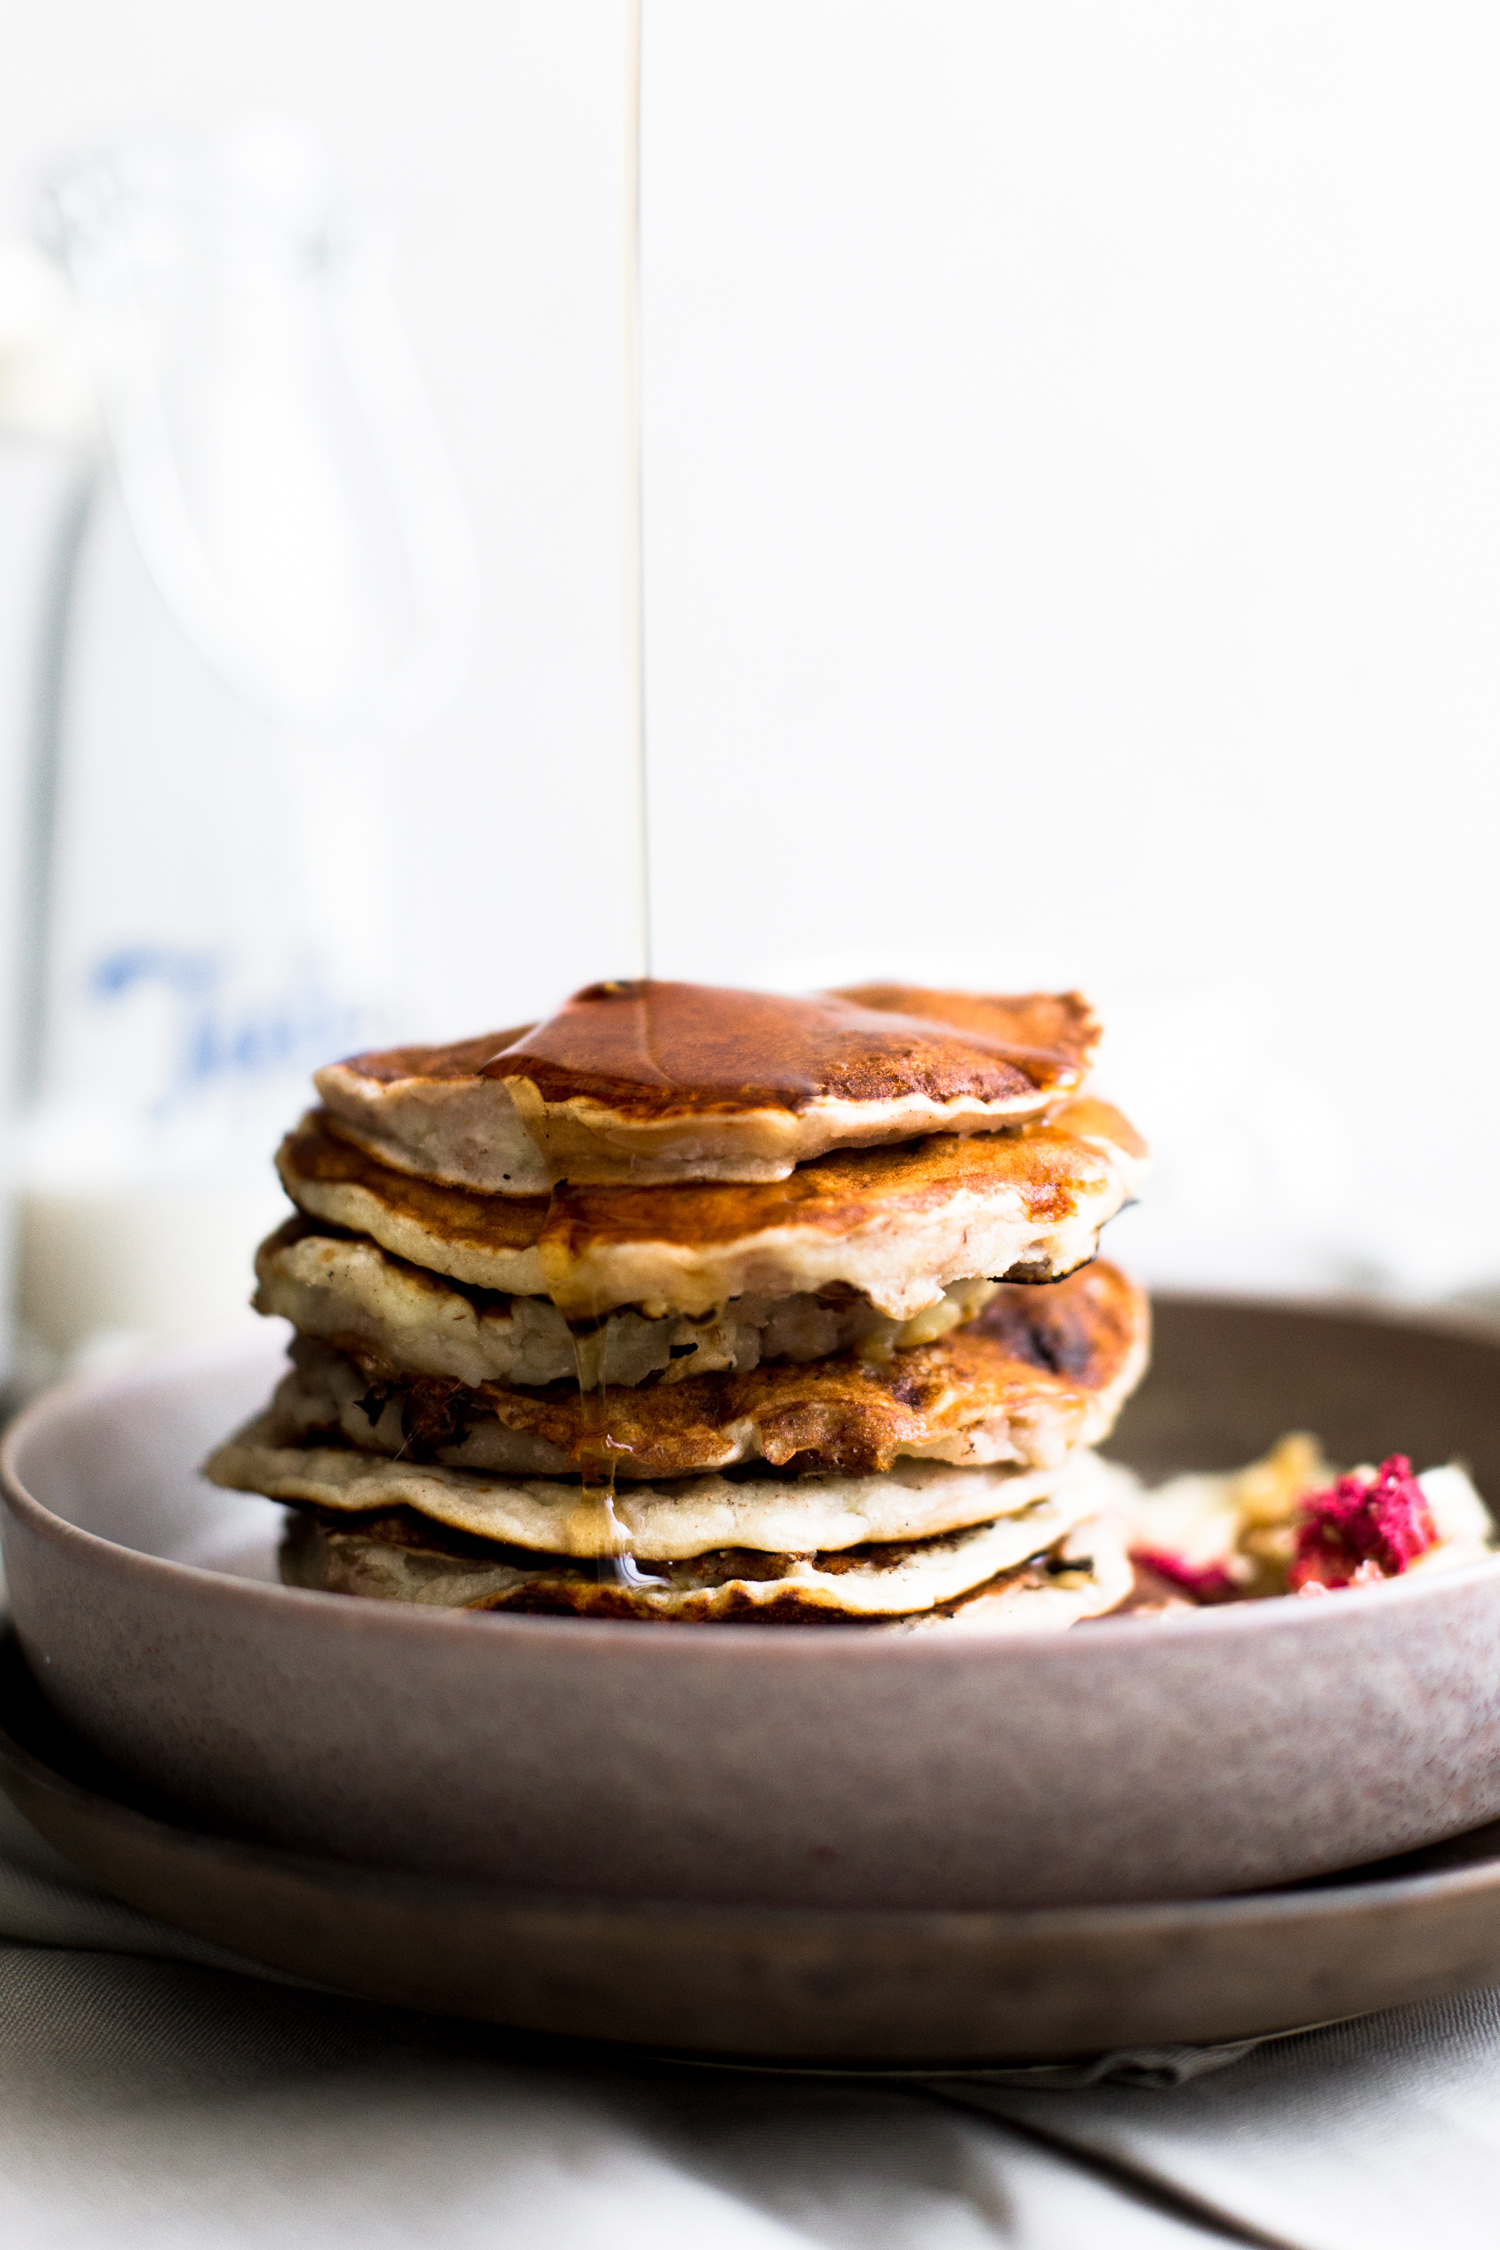 Vegan Banana Nut Pancakes - like Banana Bread but in Pancake form. Serve with lashings of Maple Syrup and Vegan Butter. Ready in under 15 minutes. #pancakes #vegan #banana #nut #bananabread #breakfast #brunch #easy #simple #dessert #vegetarian #vegan #veganpancakes